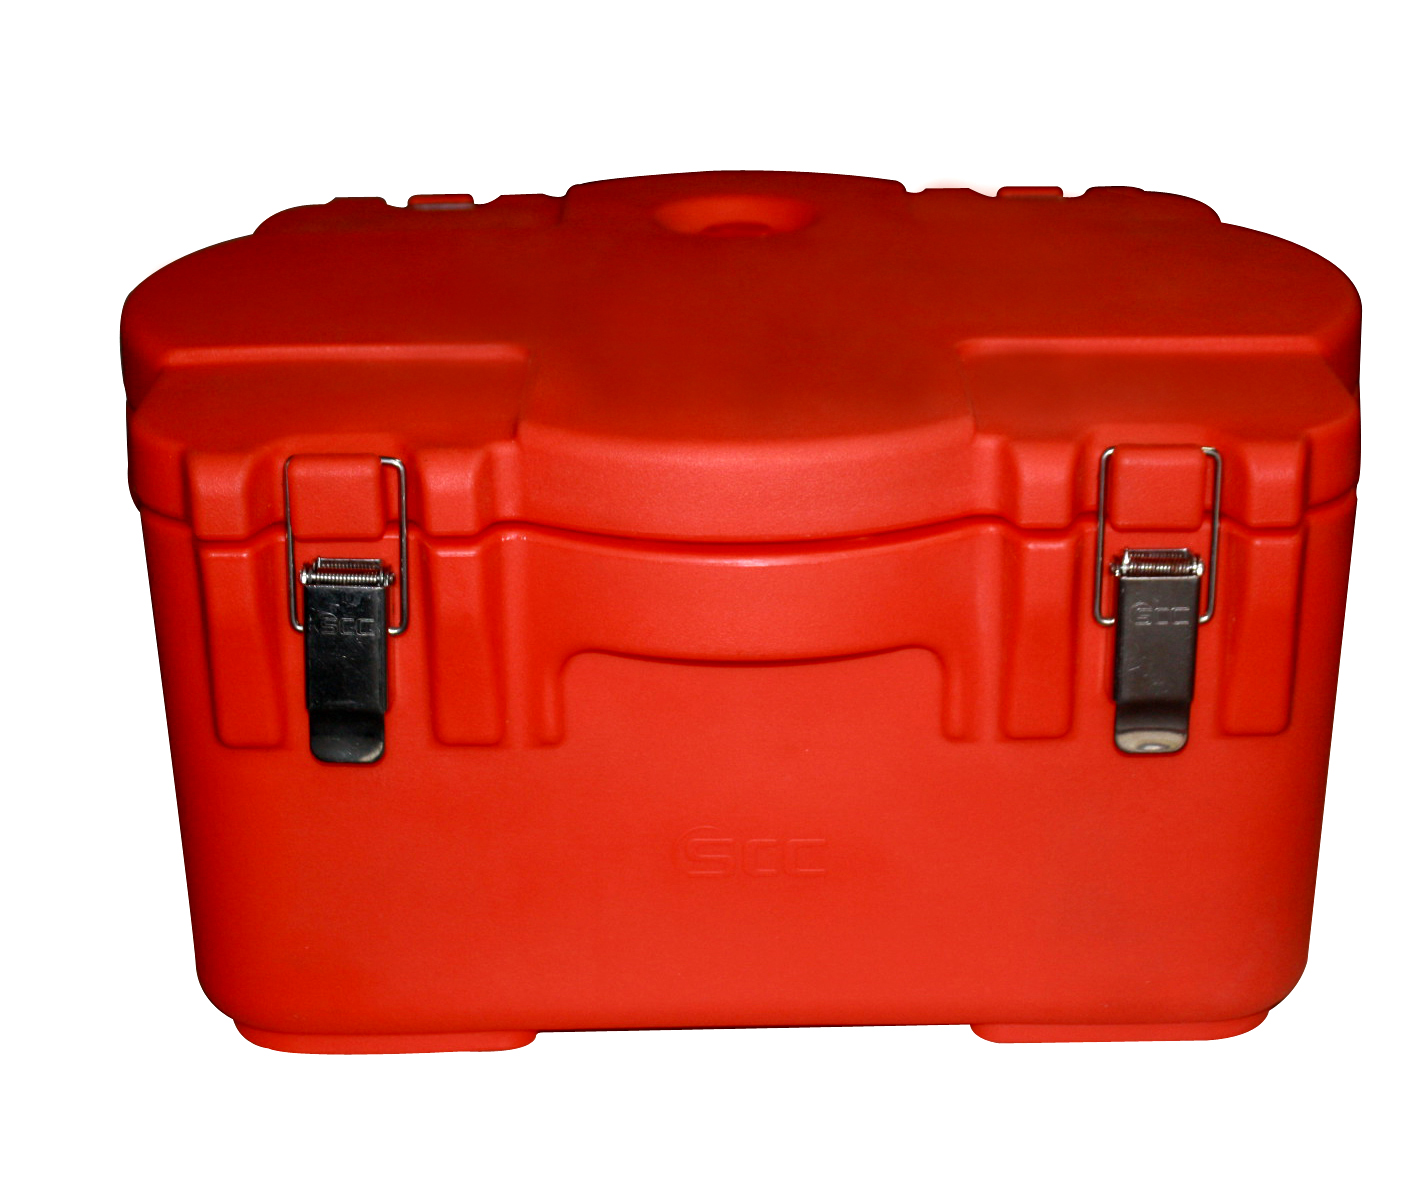 34L Insulated food carrier SB2-A34